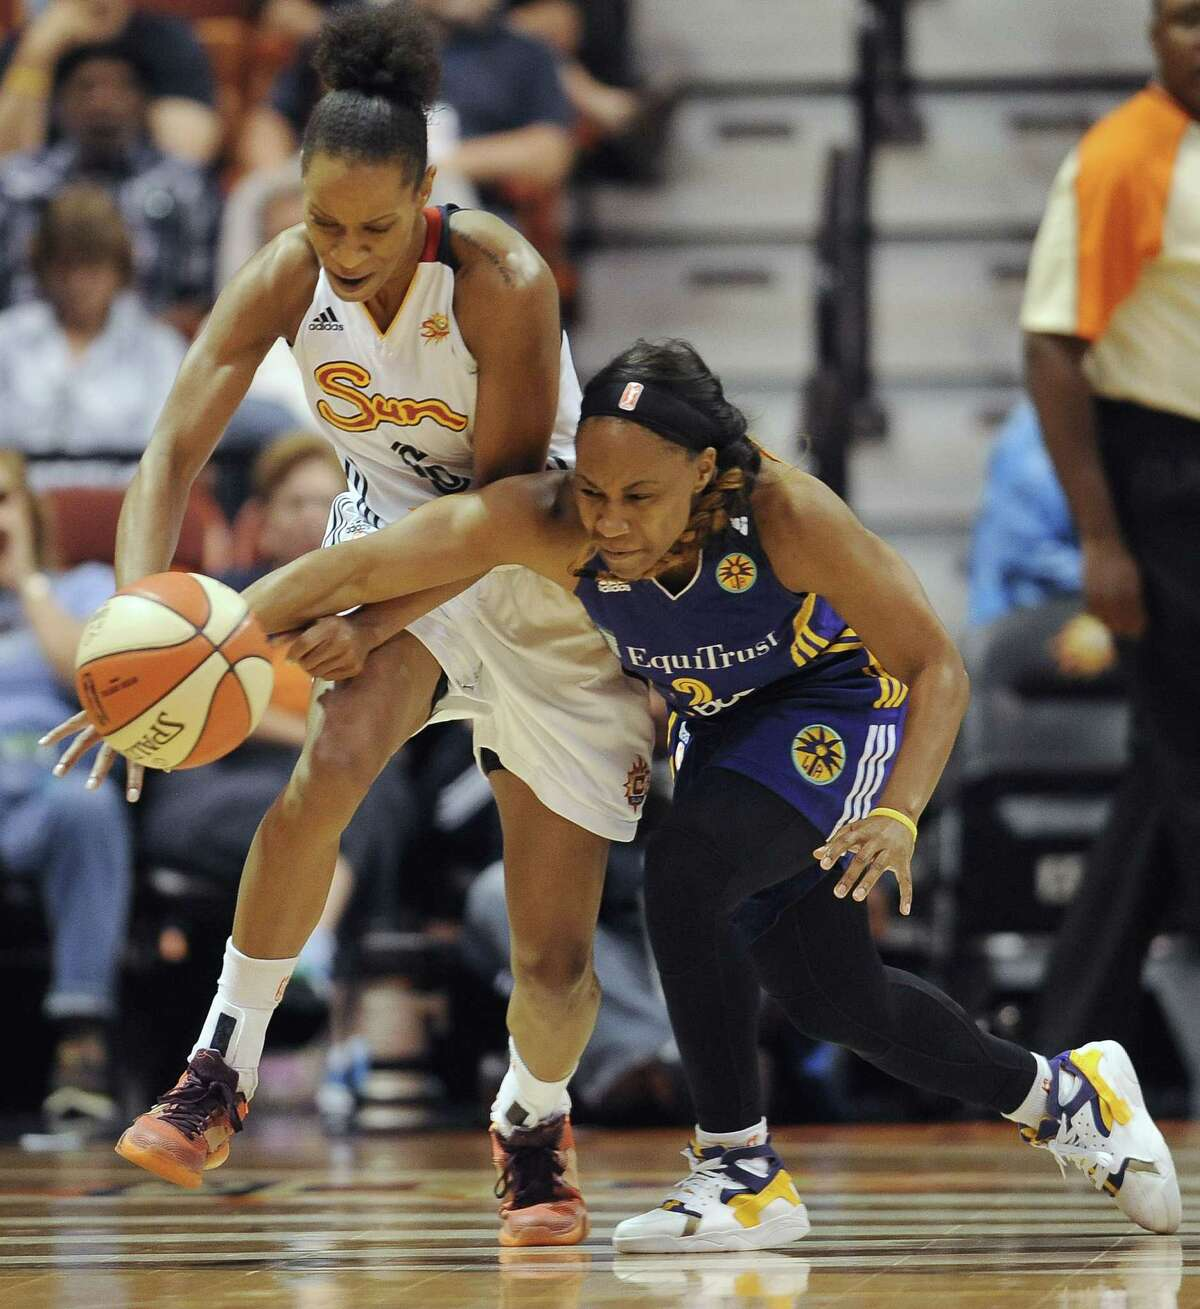 The Connecticut Sun's Jasmine Thomas, left, chases down a loose ball during a recent game.